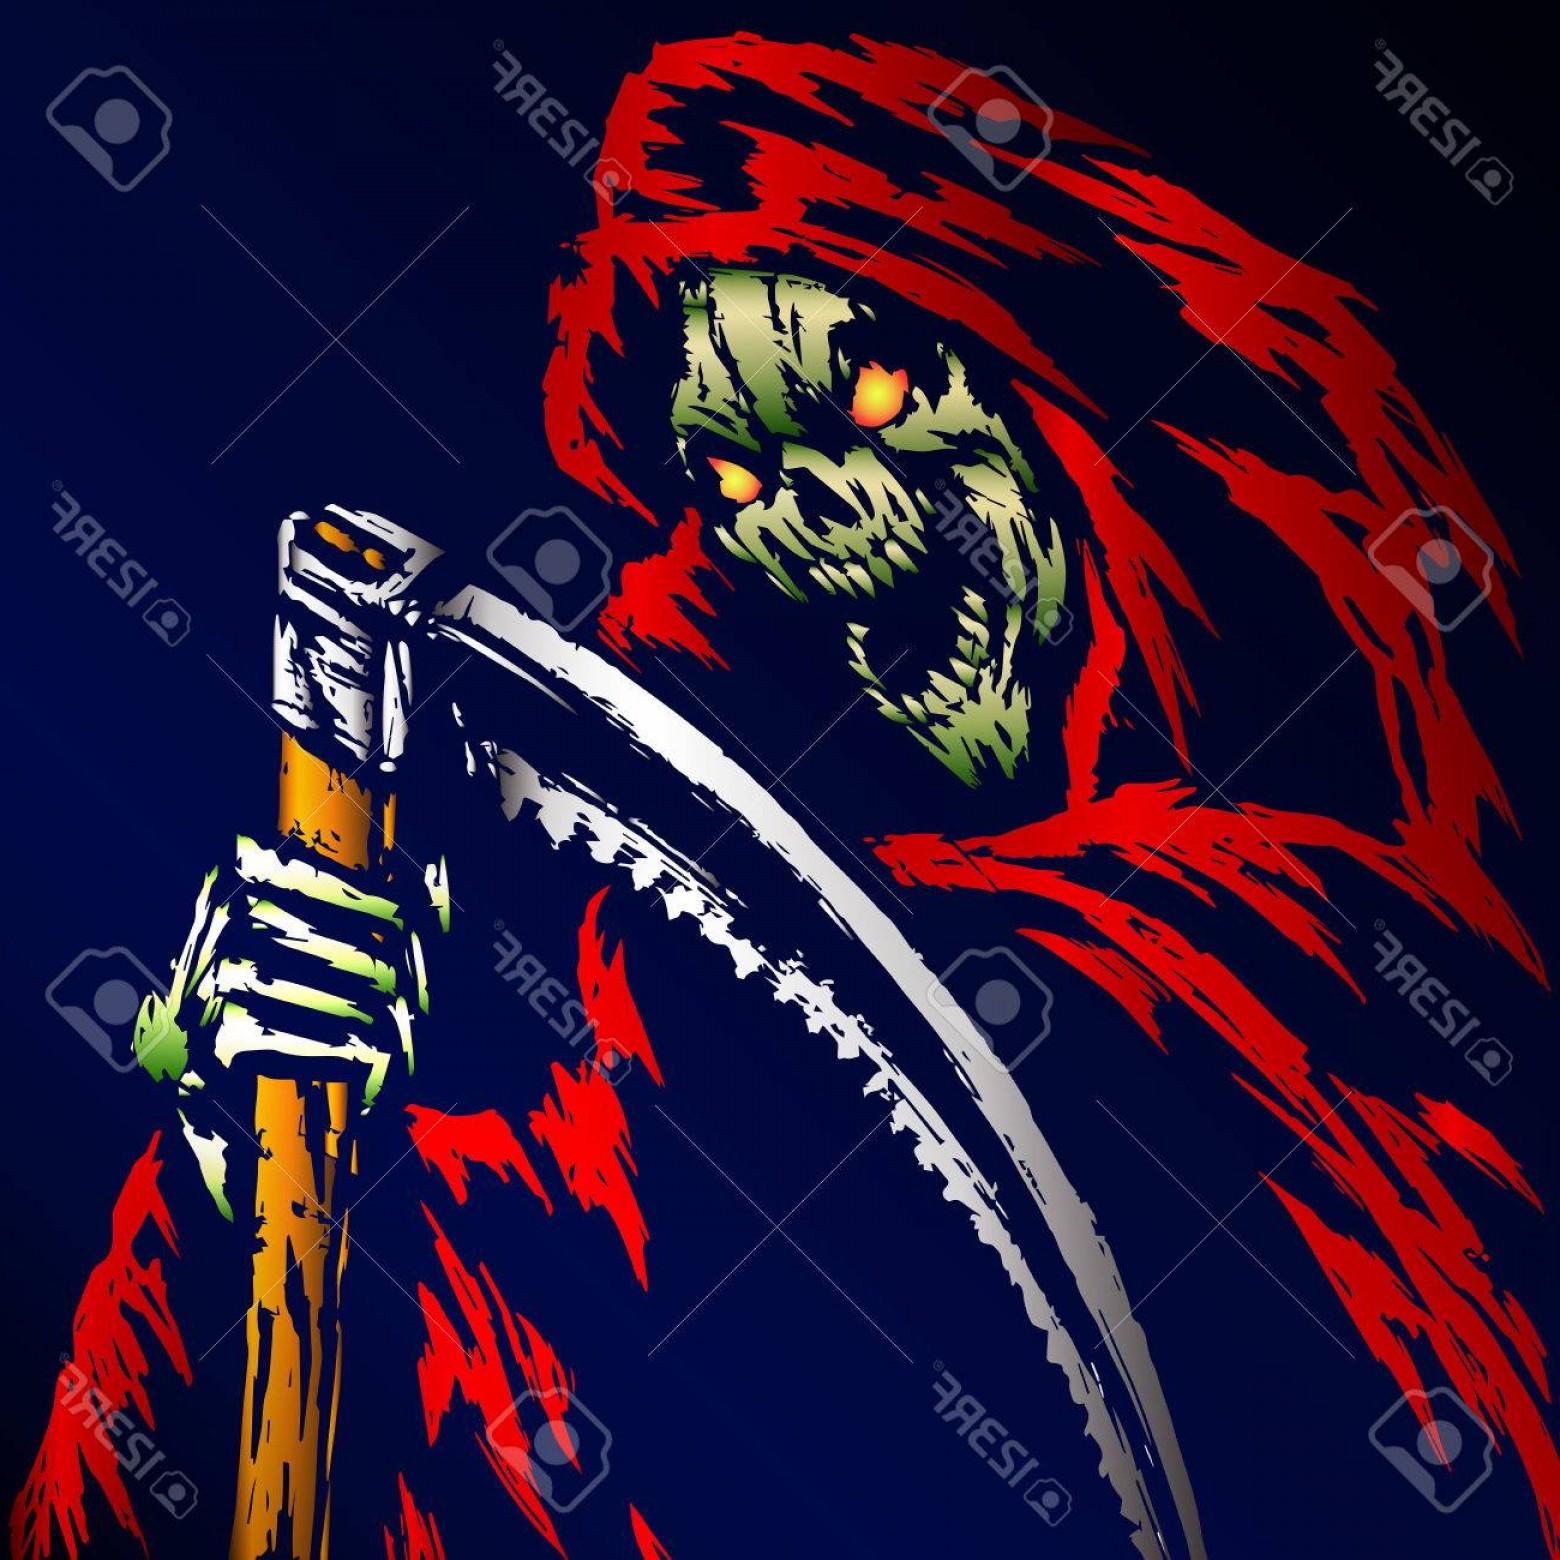 Chewbacca Vector Flat Design: Photostock Vector Red Death With A Scythe Blue Background Web Icon Isolated Flat Vector Illustration Apocalypse Demon